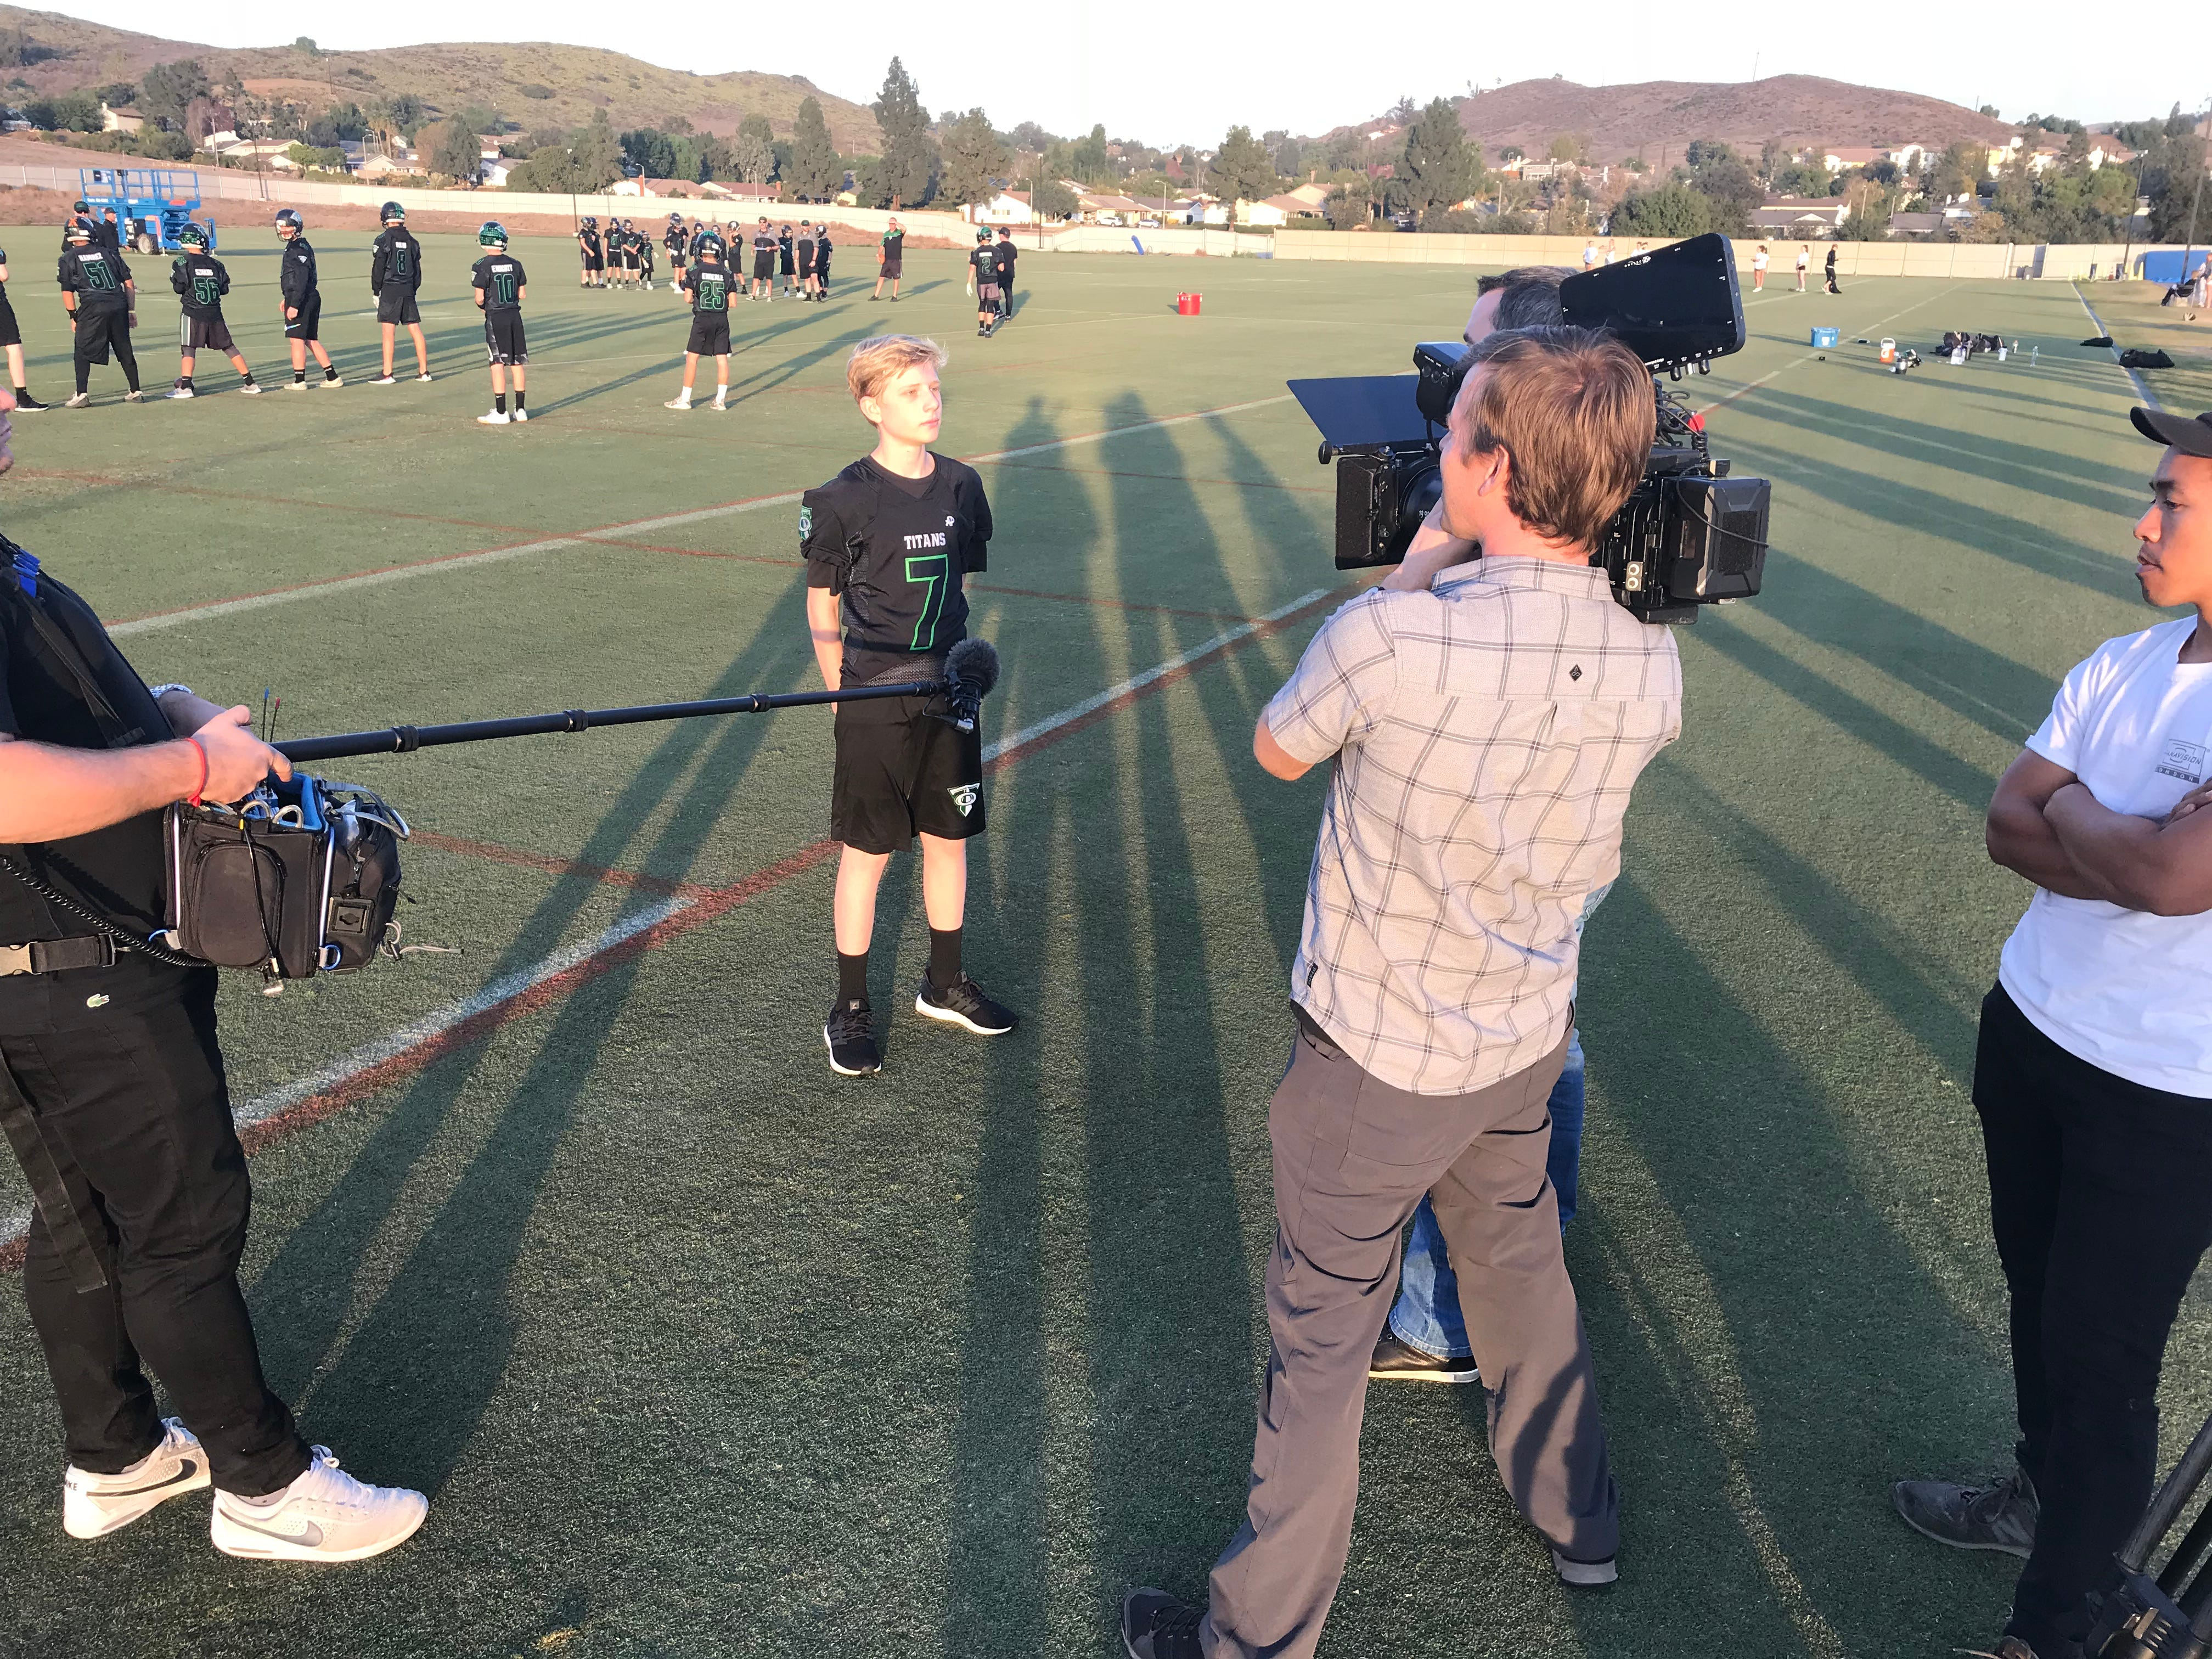 Displaced Thousand Oaks youth football team prepares for its Super Bowl at Rams facility